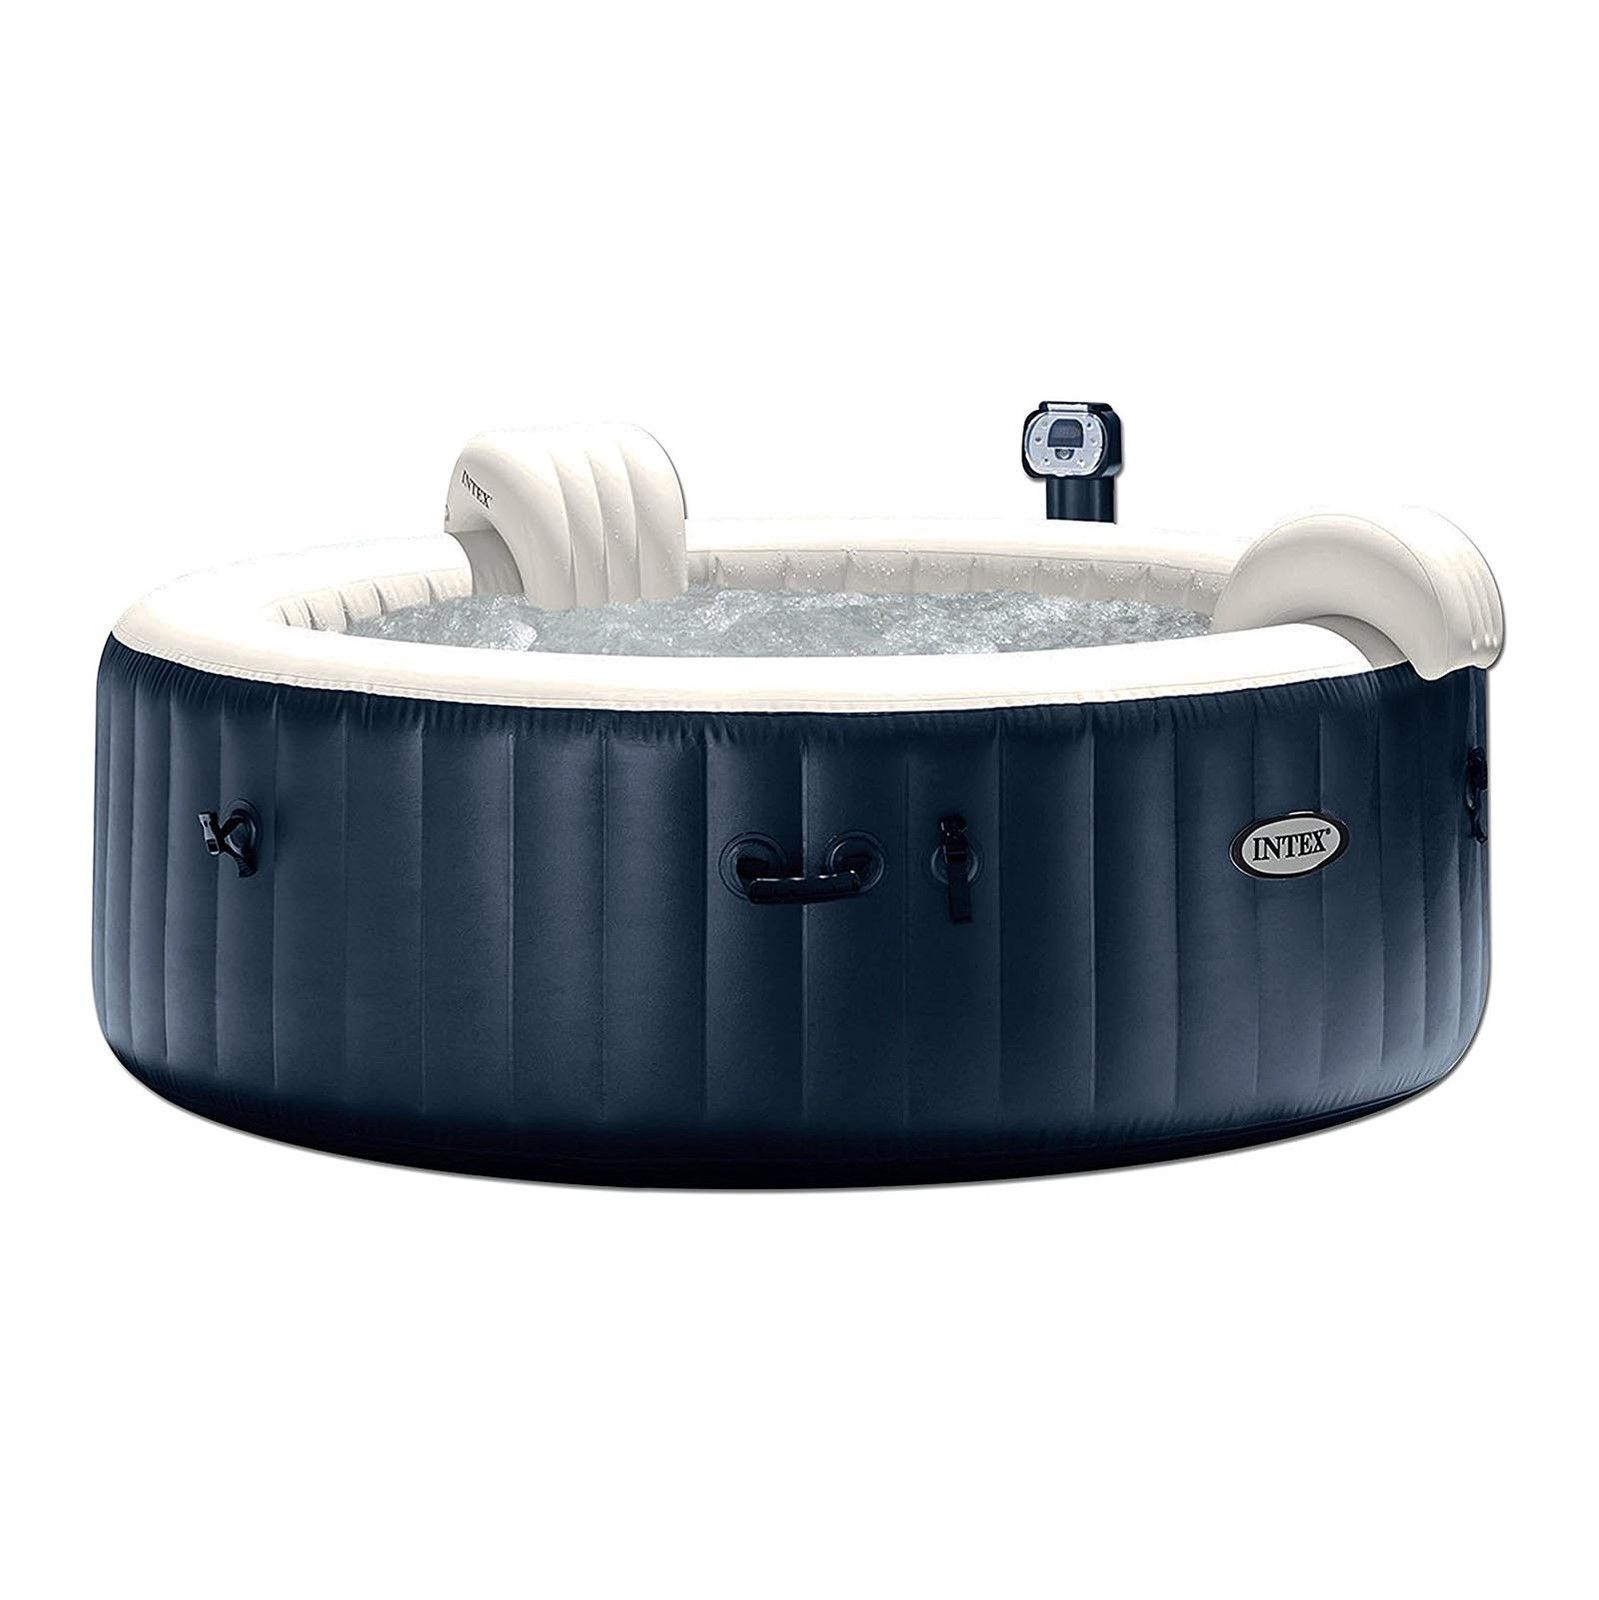 Details About Intex Purespa 75 Inch Portable Bubble Jet Spa 6 Person Inflatable Round Hot Tub Baignoire Spa Gonflable Et Spa Gonflable Intex